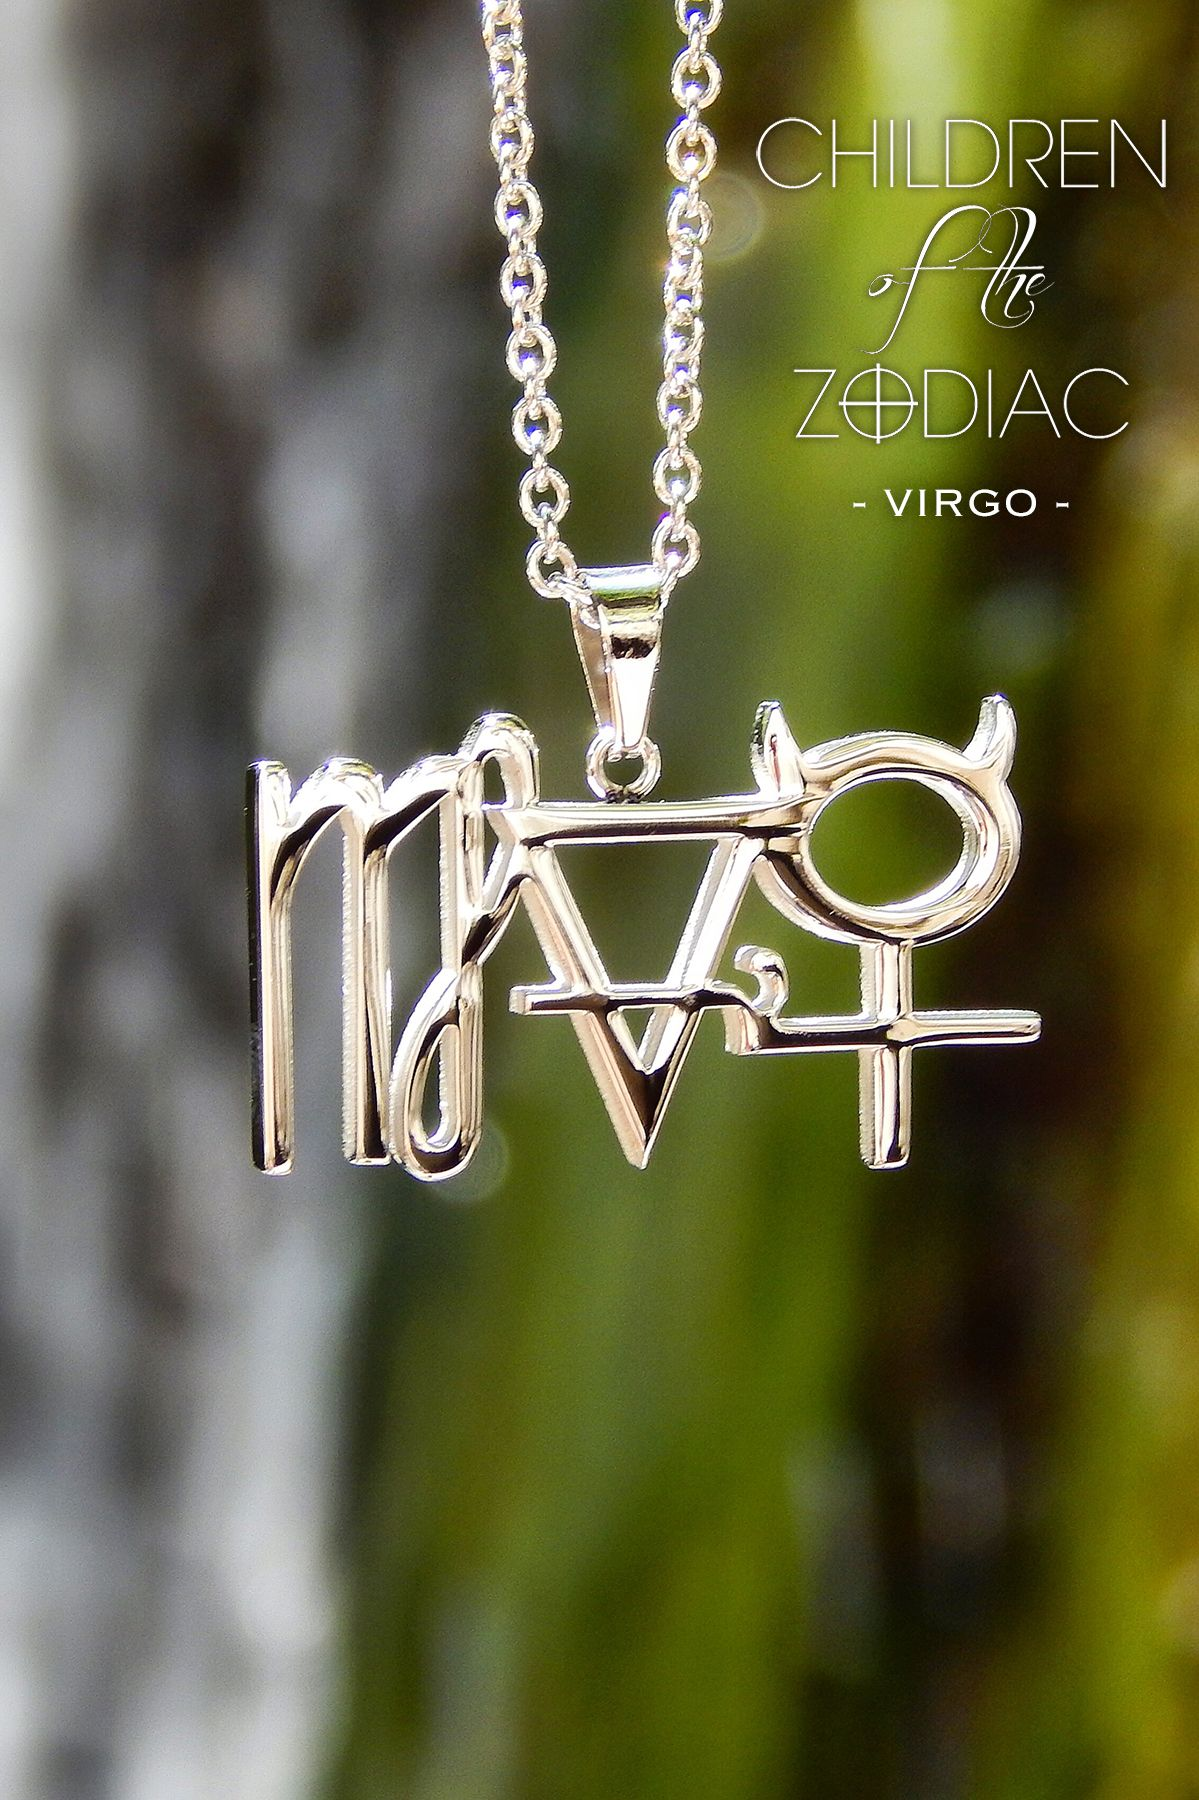 mother gold best wife stone birthday present jewelry swarovski jewellery necklace by her products zodiac s a day blue valentine with gifts husband sign virgo ideas nano astound from imprint white for gift now